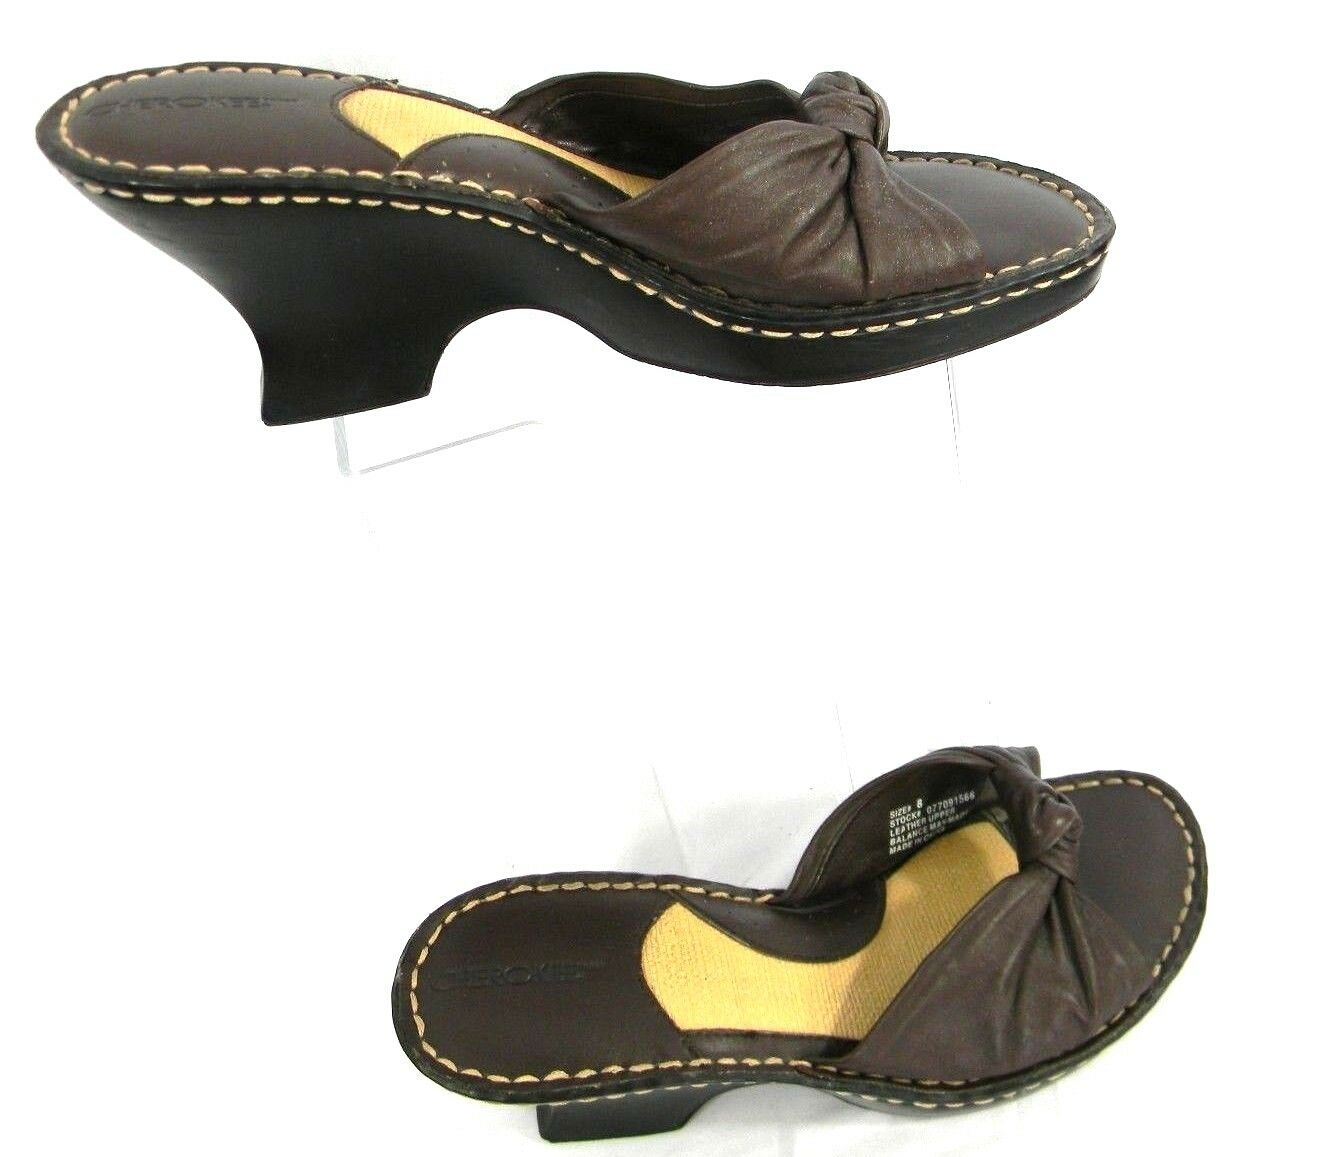 Cherokee 8 Sandals Sandals Brown Leather Wedge Heels Slip-On Womens Sandals 8 Size 8 Shoes 130053